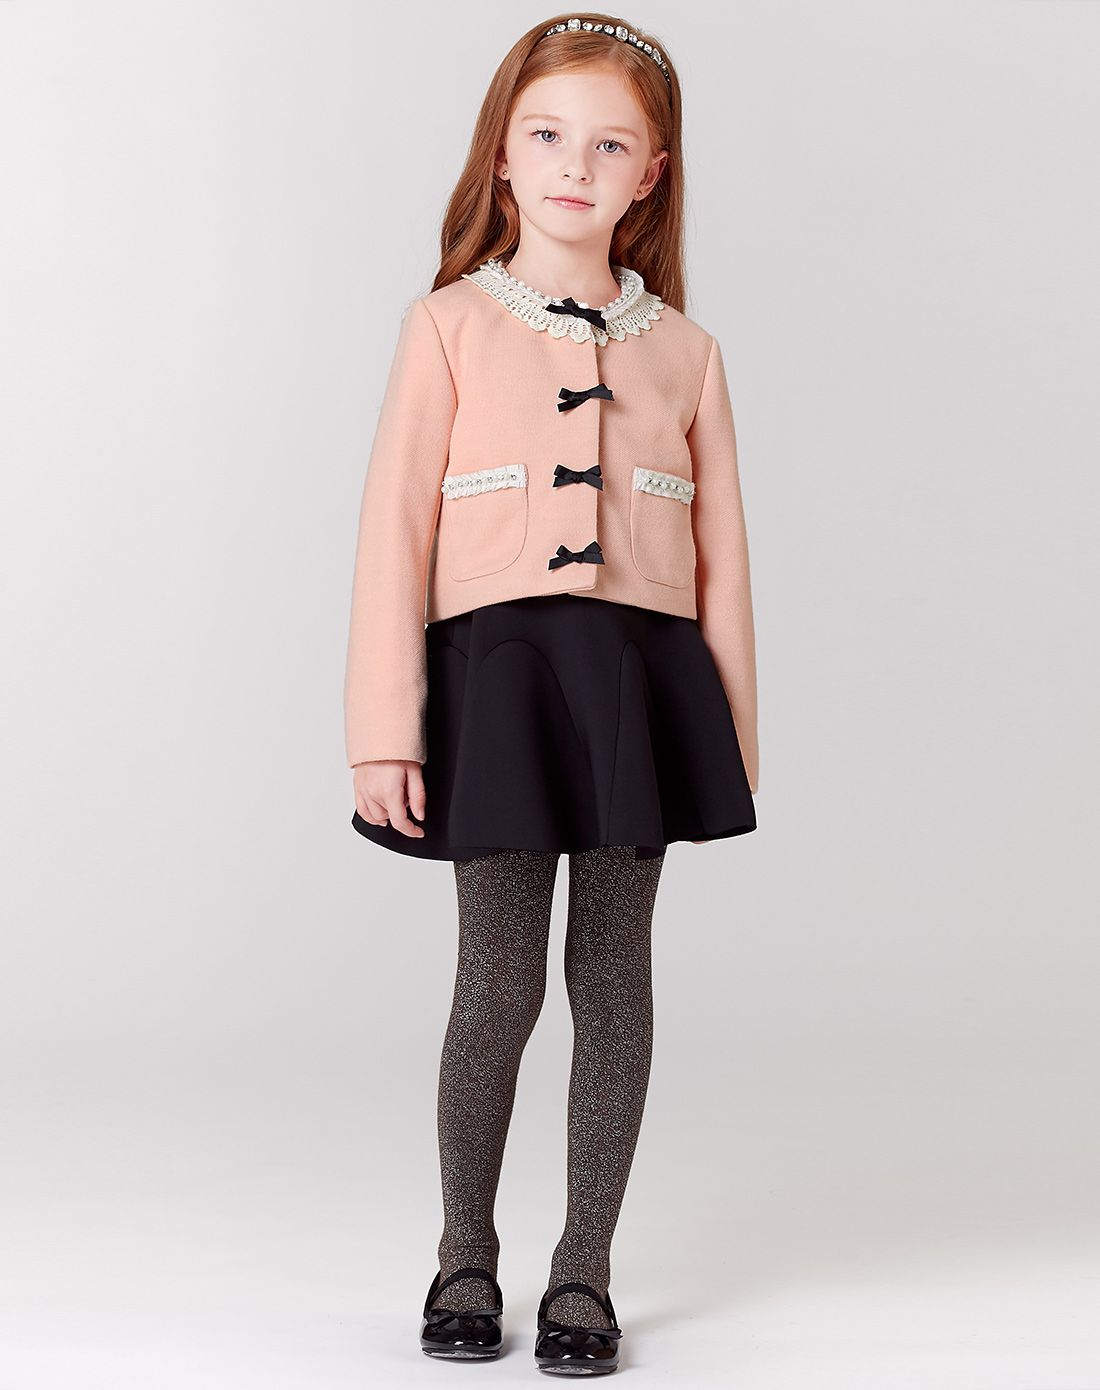 Kids Fashion Clothing New Arrival High Quality Girls Winter Skirts